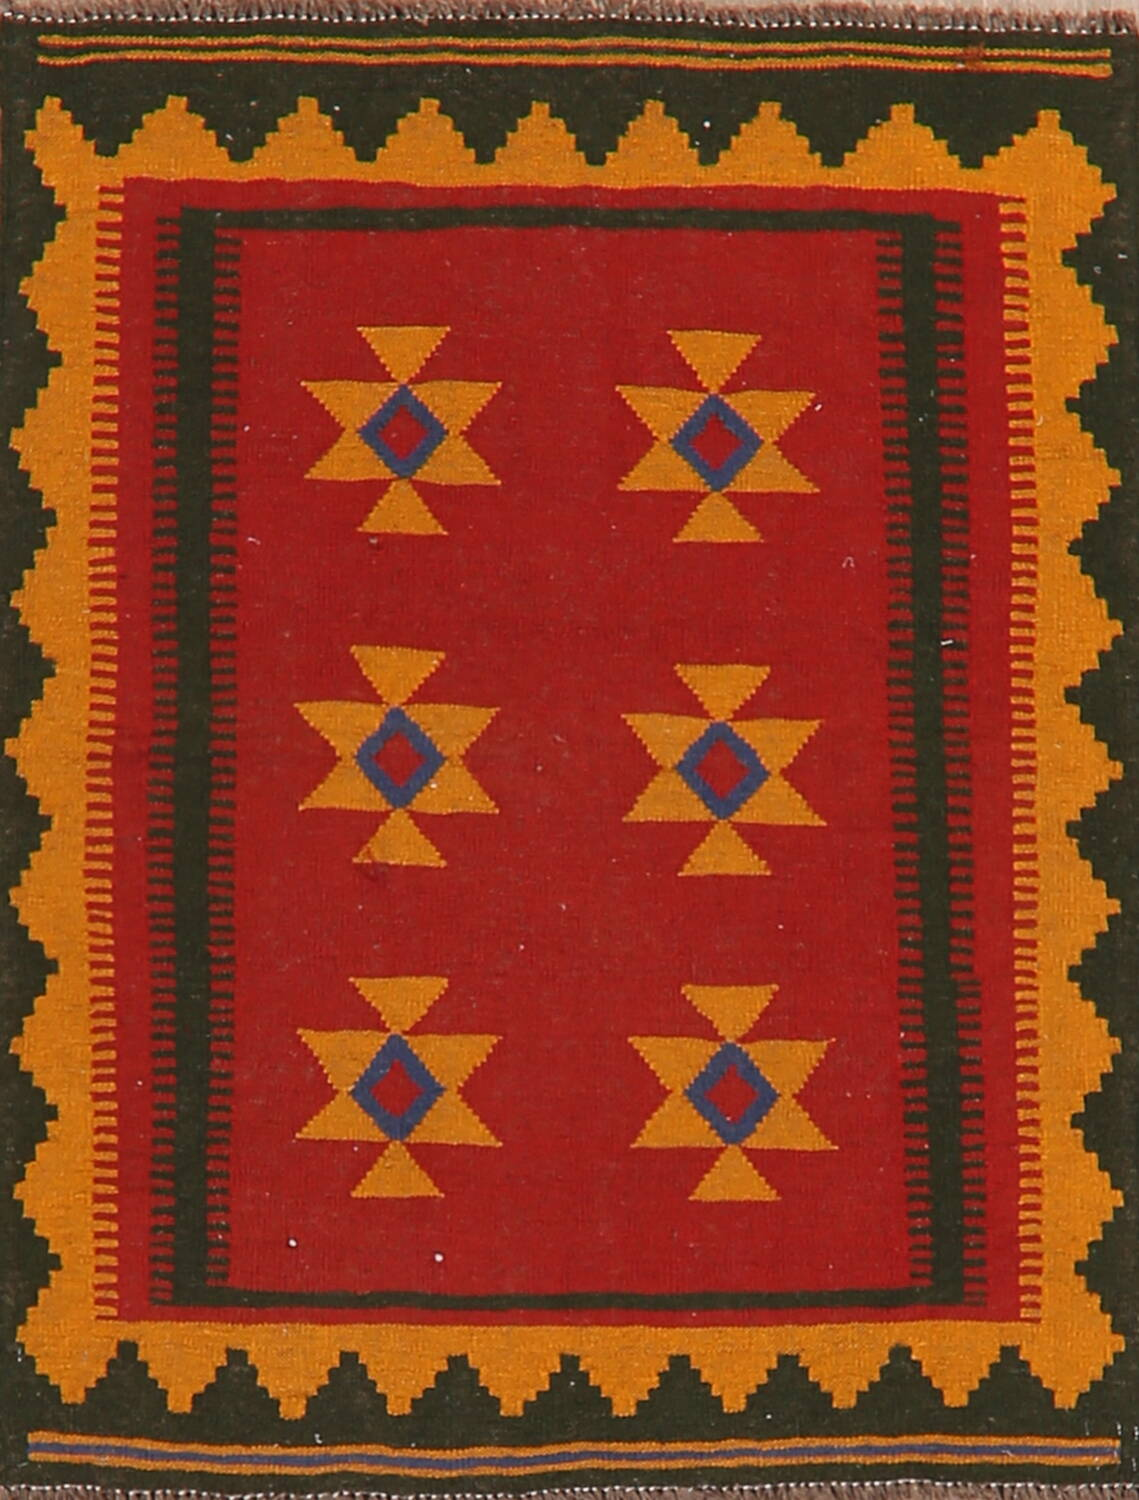 South-Western Kilim Afghan Red Area Rug 4x4 Square image 1